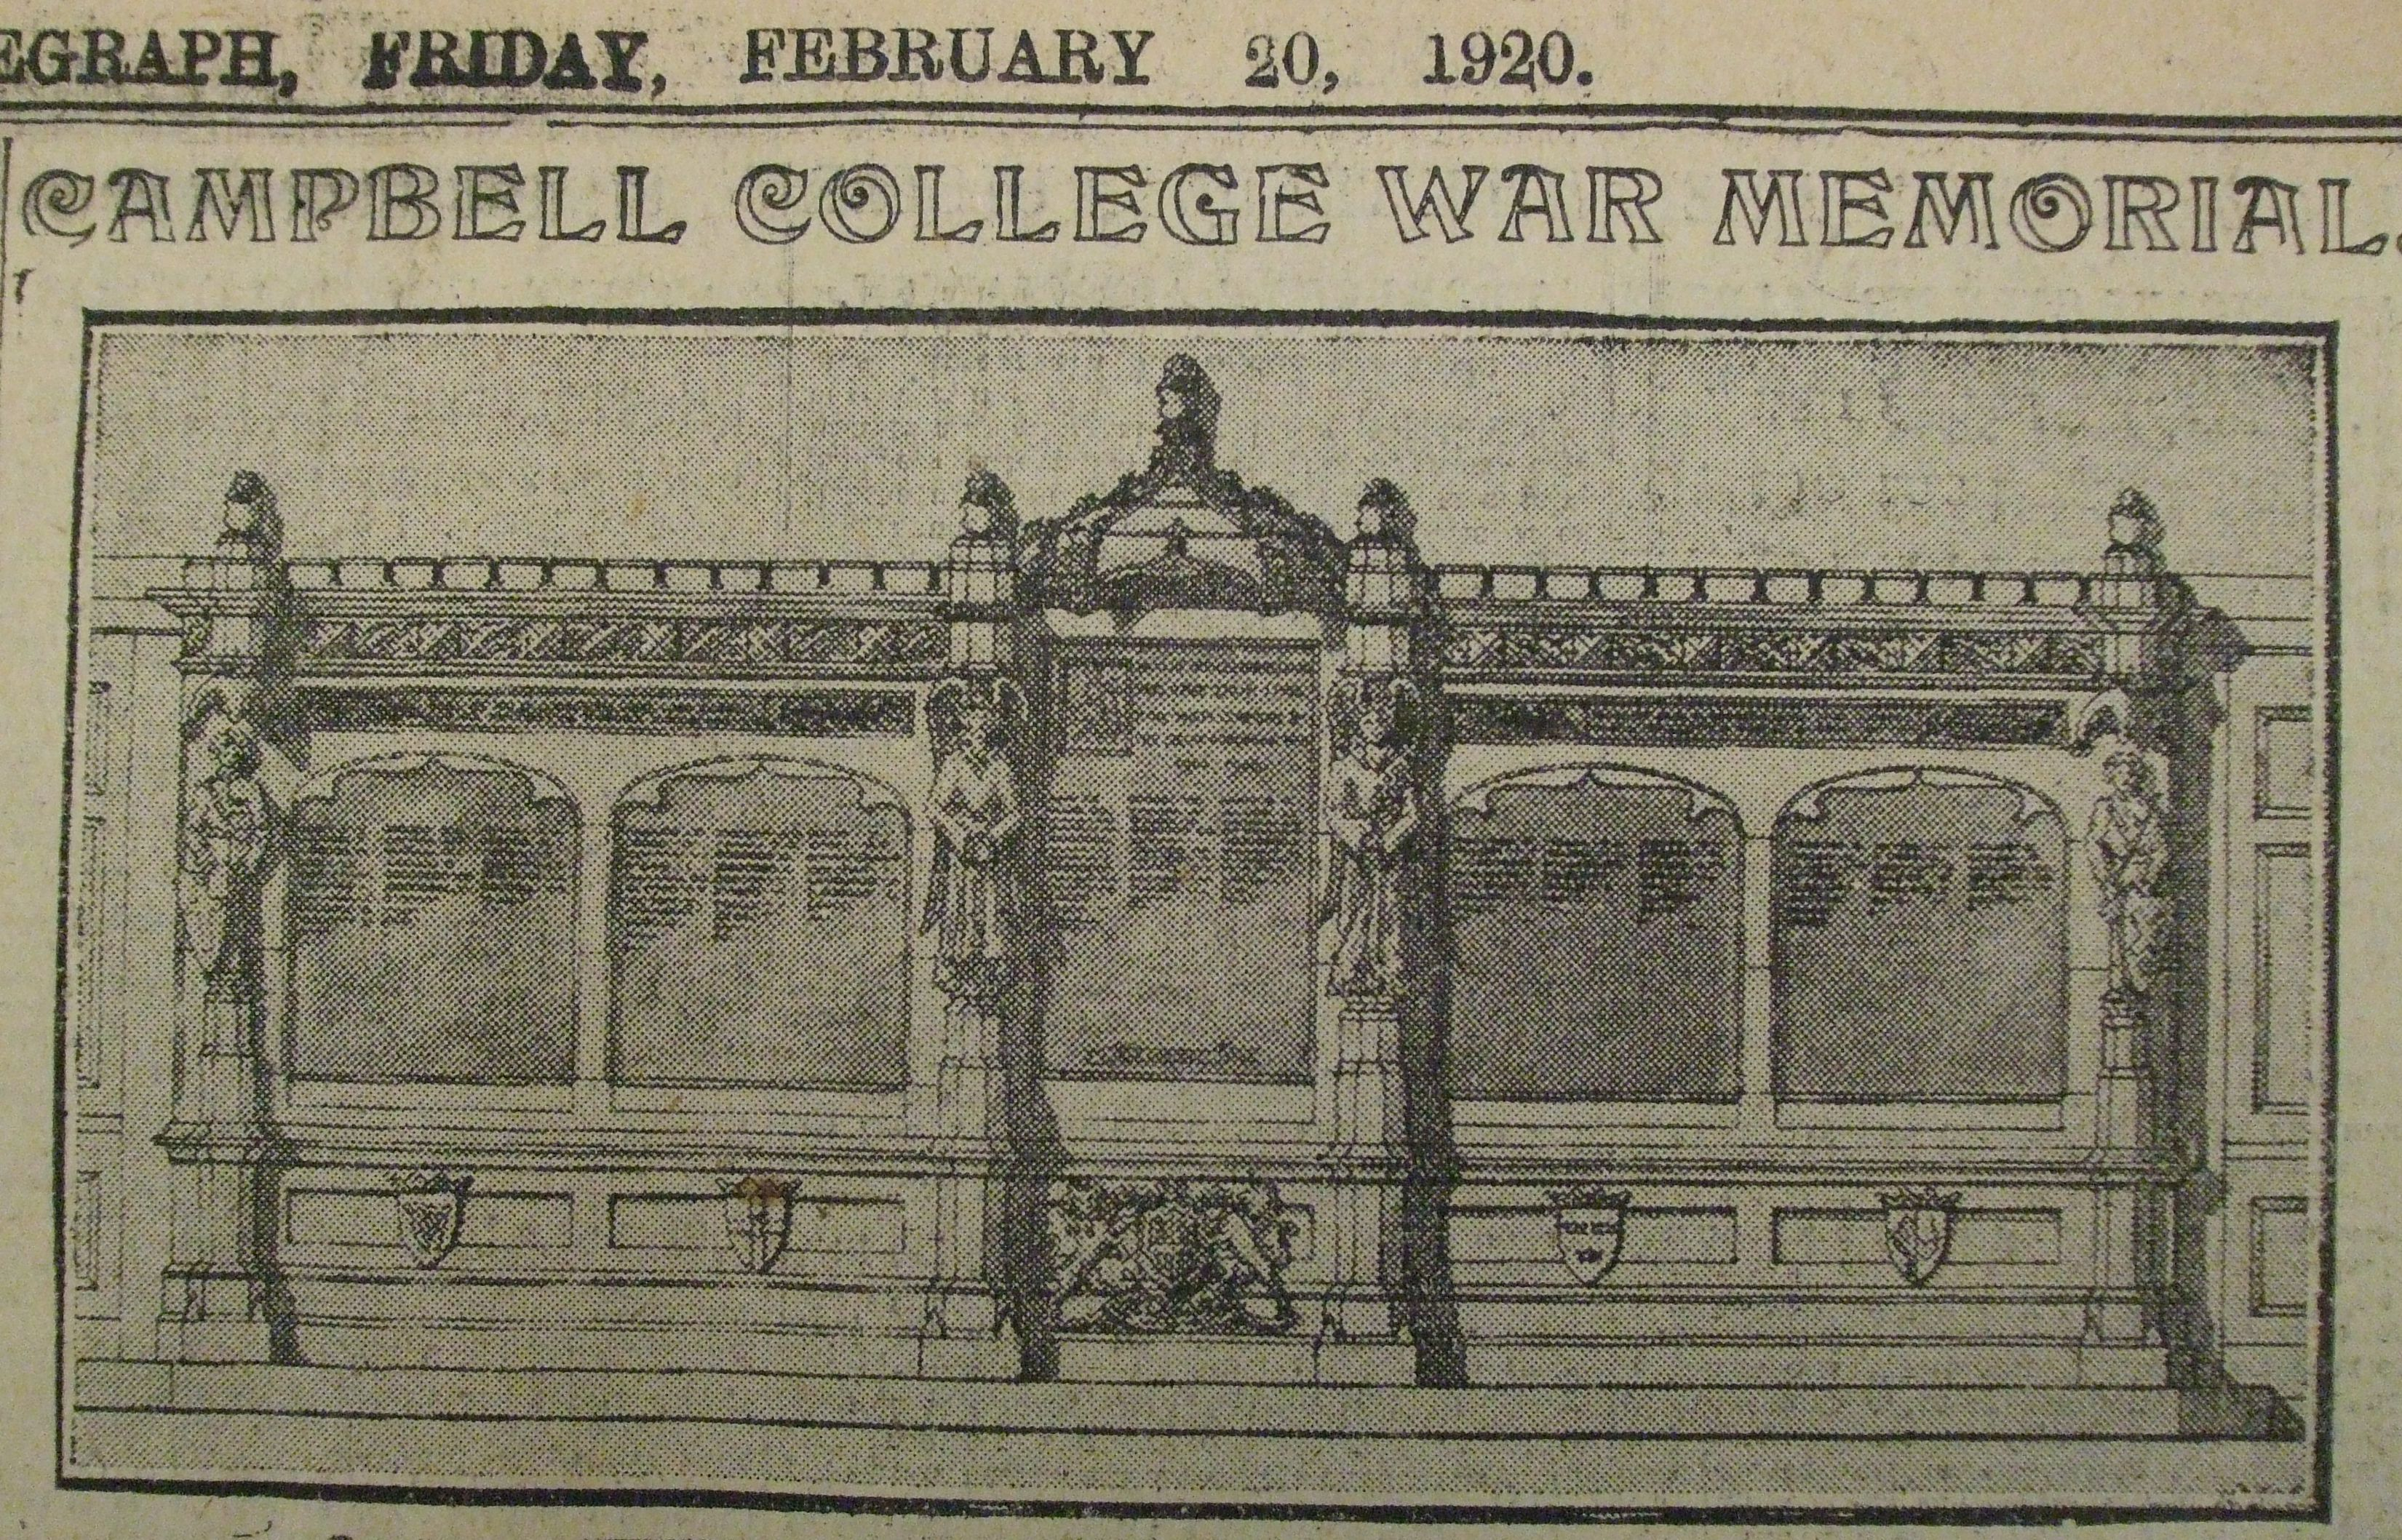 Design for the current Campbell College War Memorial (Belfast Telegraph, 20-02-1920)